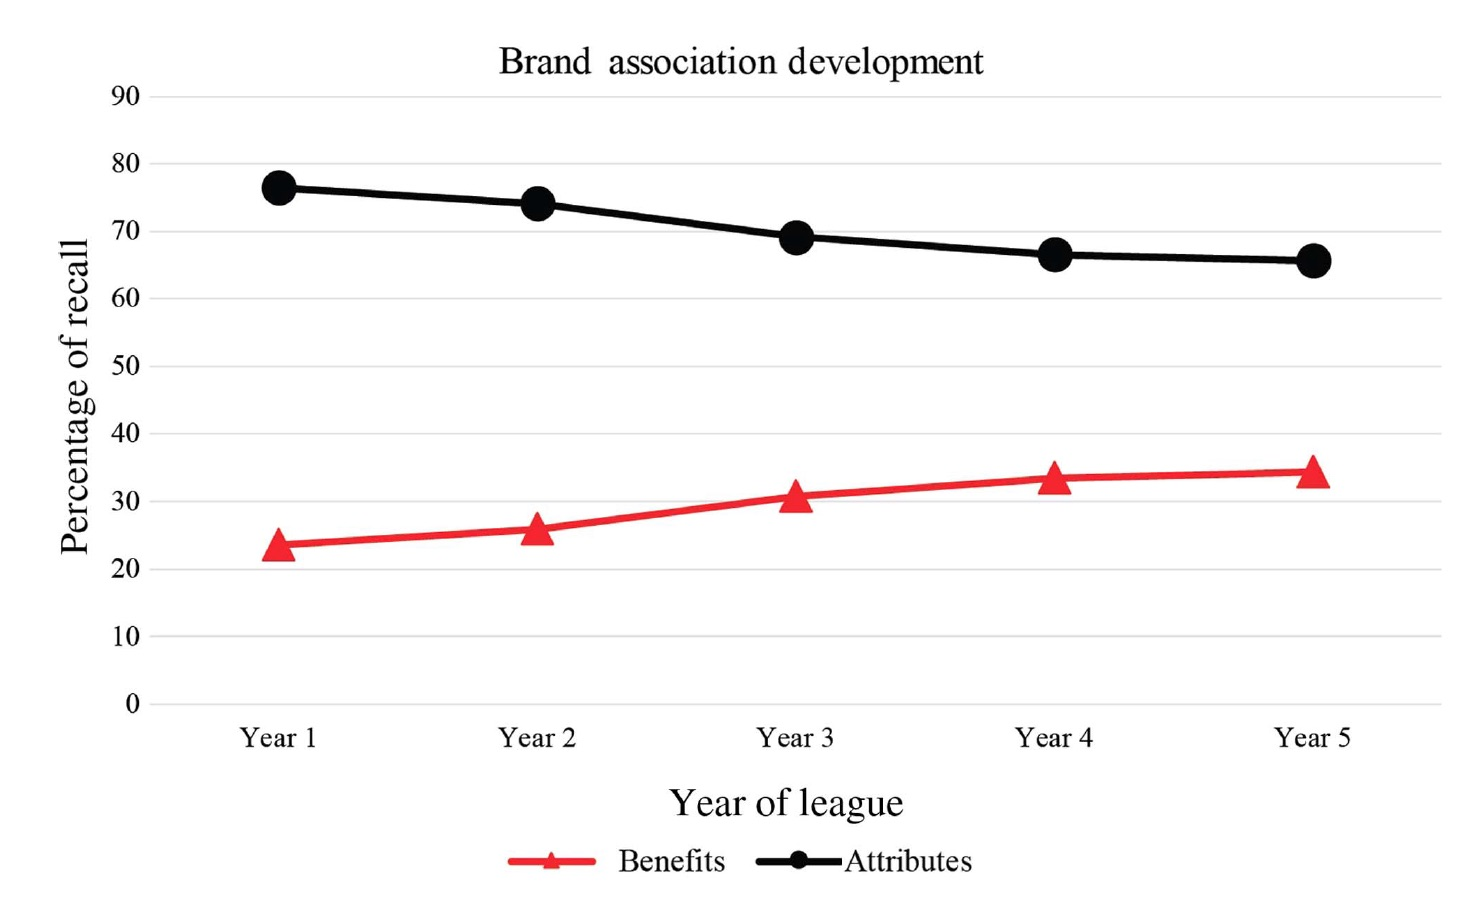 Development of brand associations over time